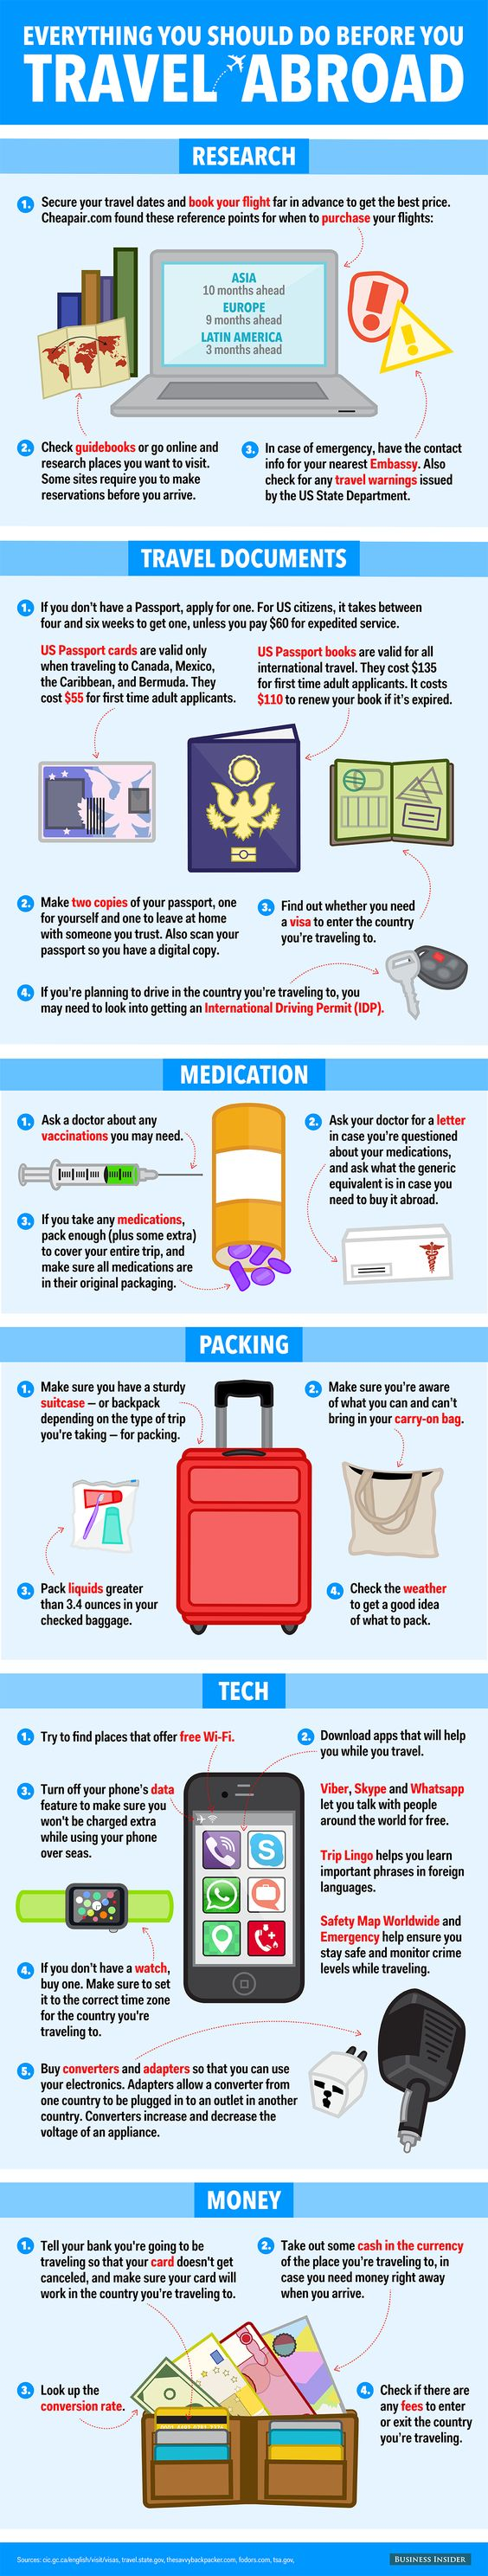 Infographic: Everything you should do before you travel abroad